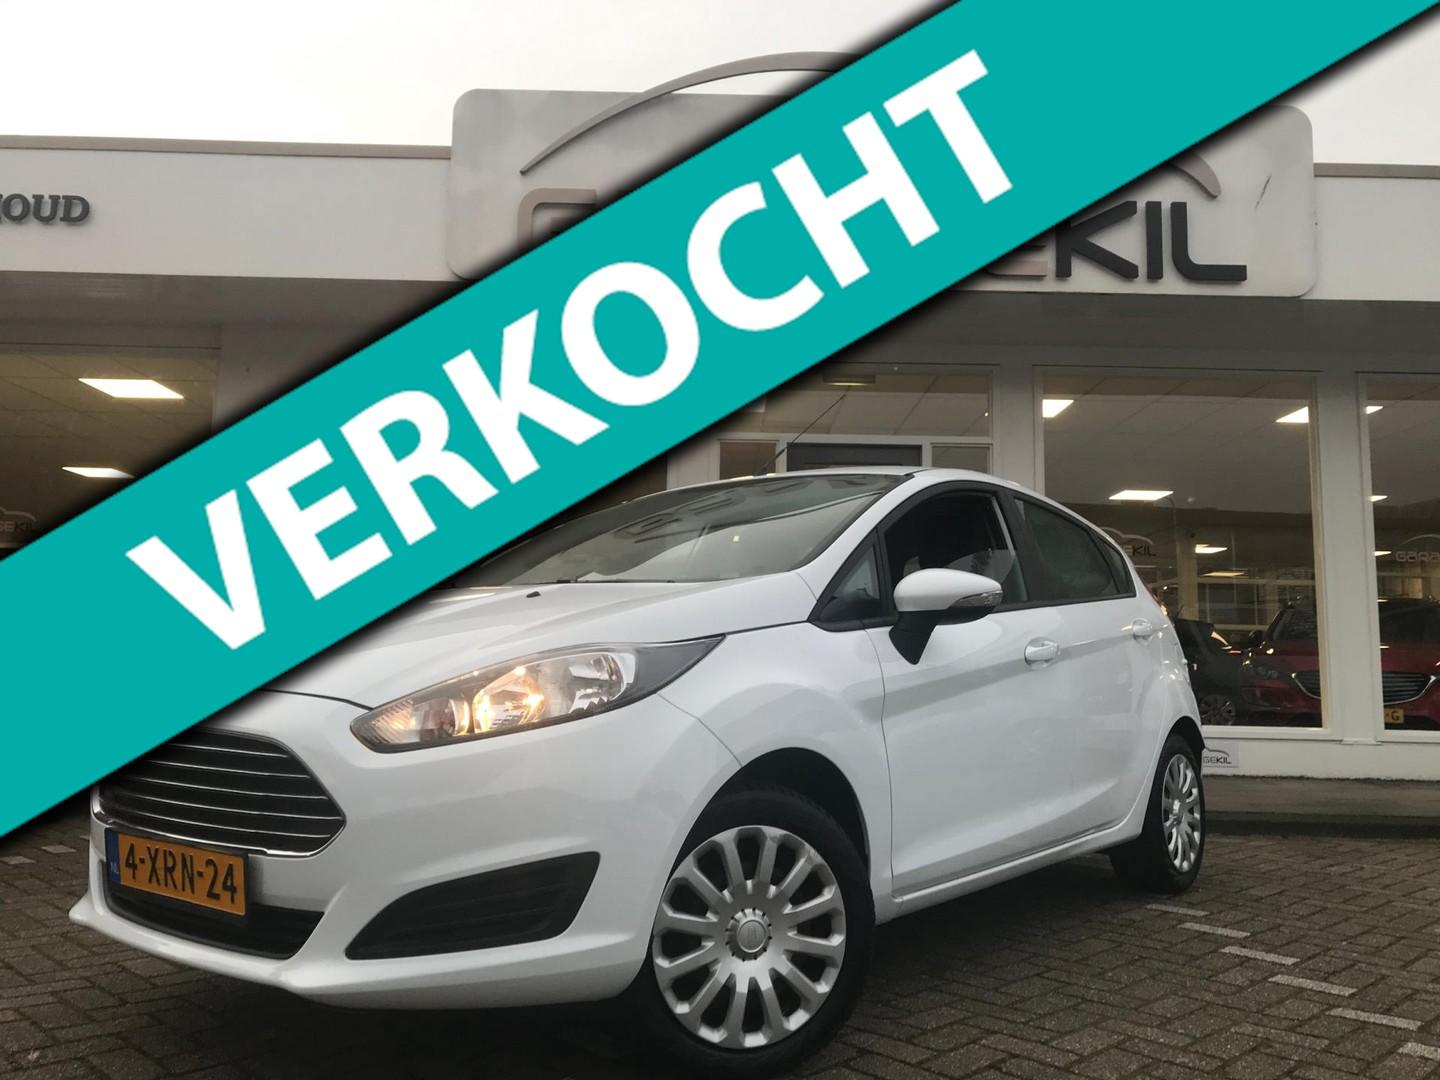 Ford Fiesta 1.0 style or.nl